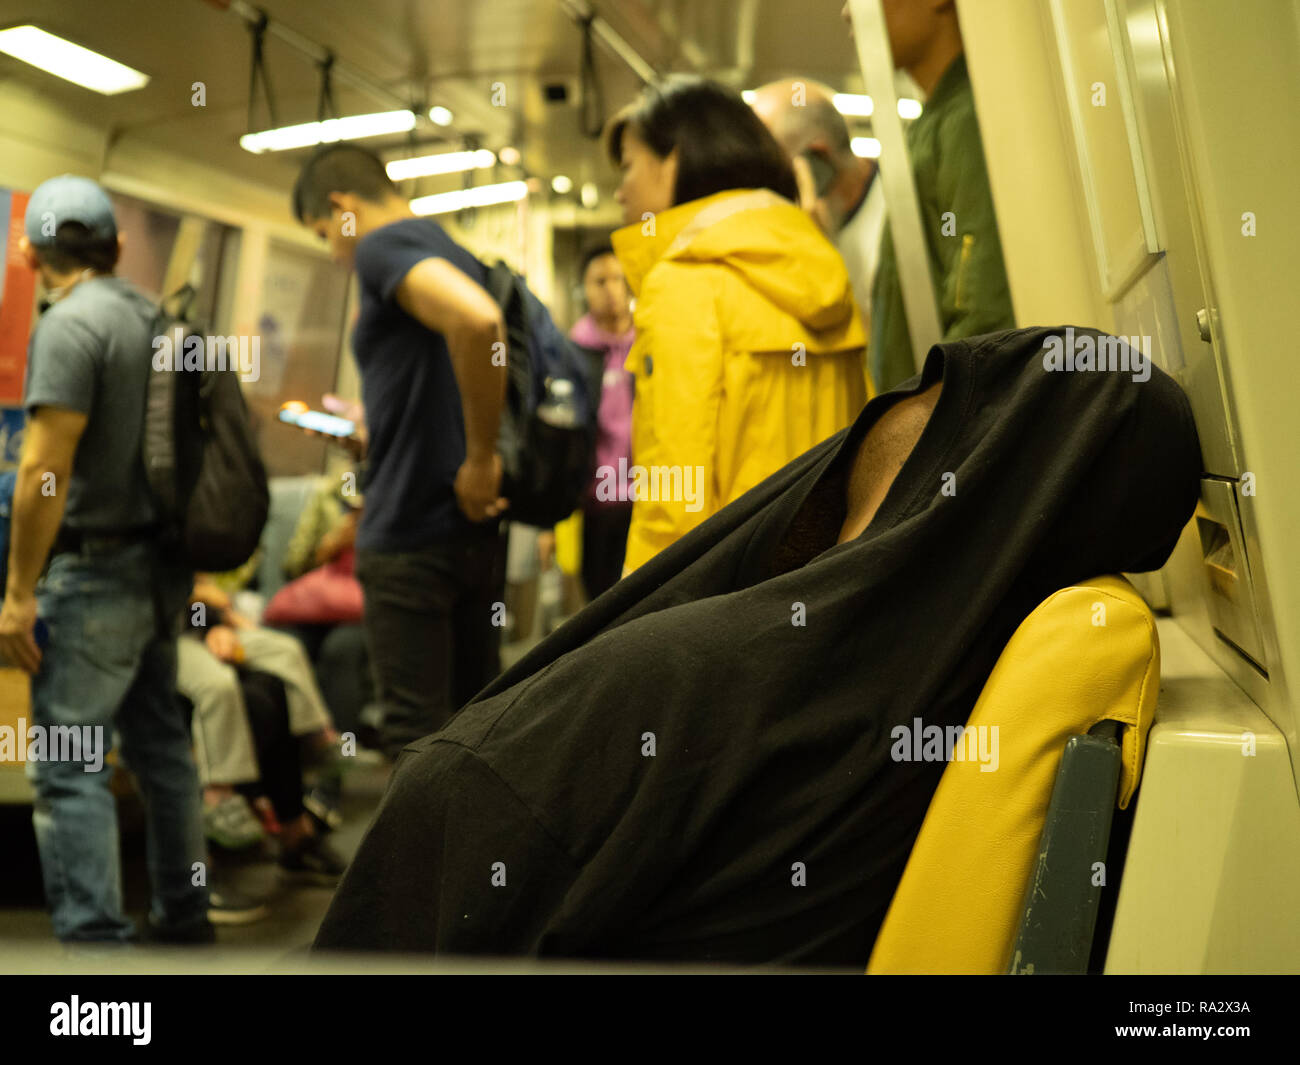 Man sleeps with shirt over his head on a crowded BART subway car - Stock Image